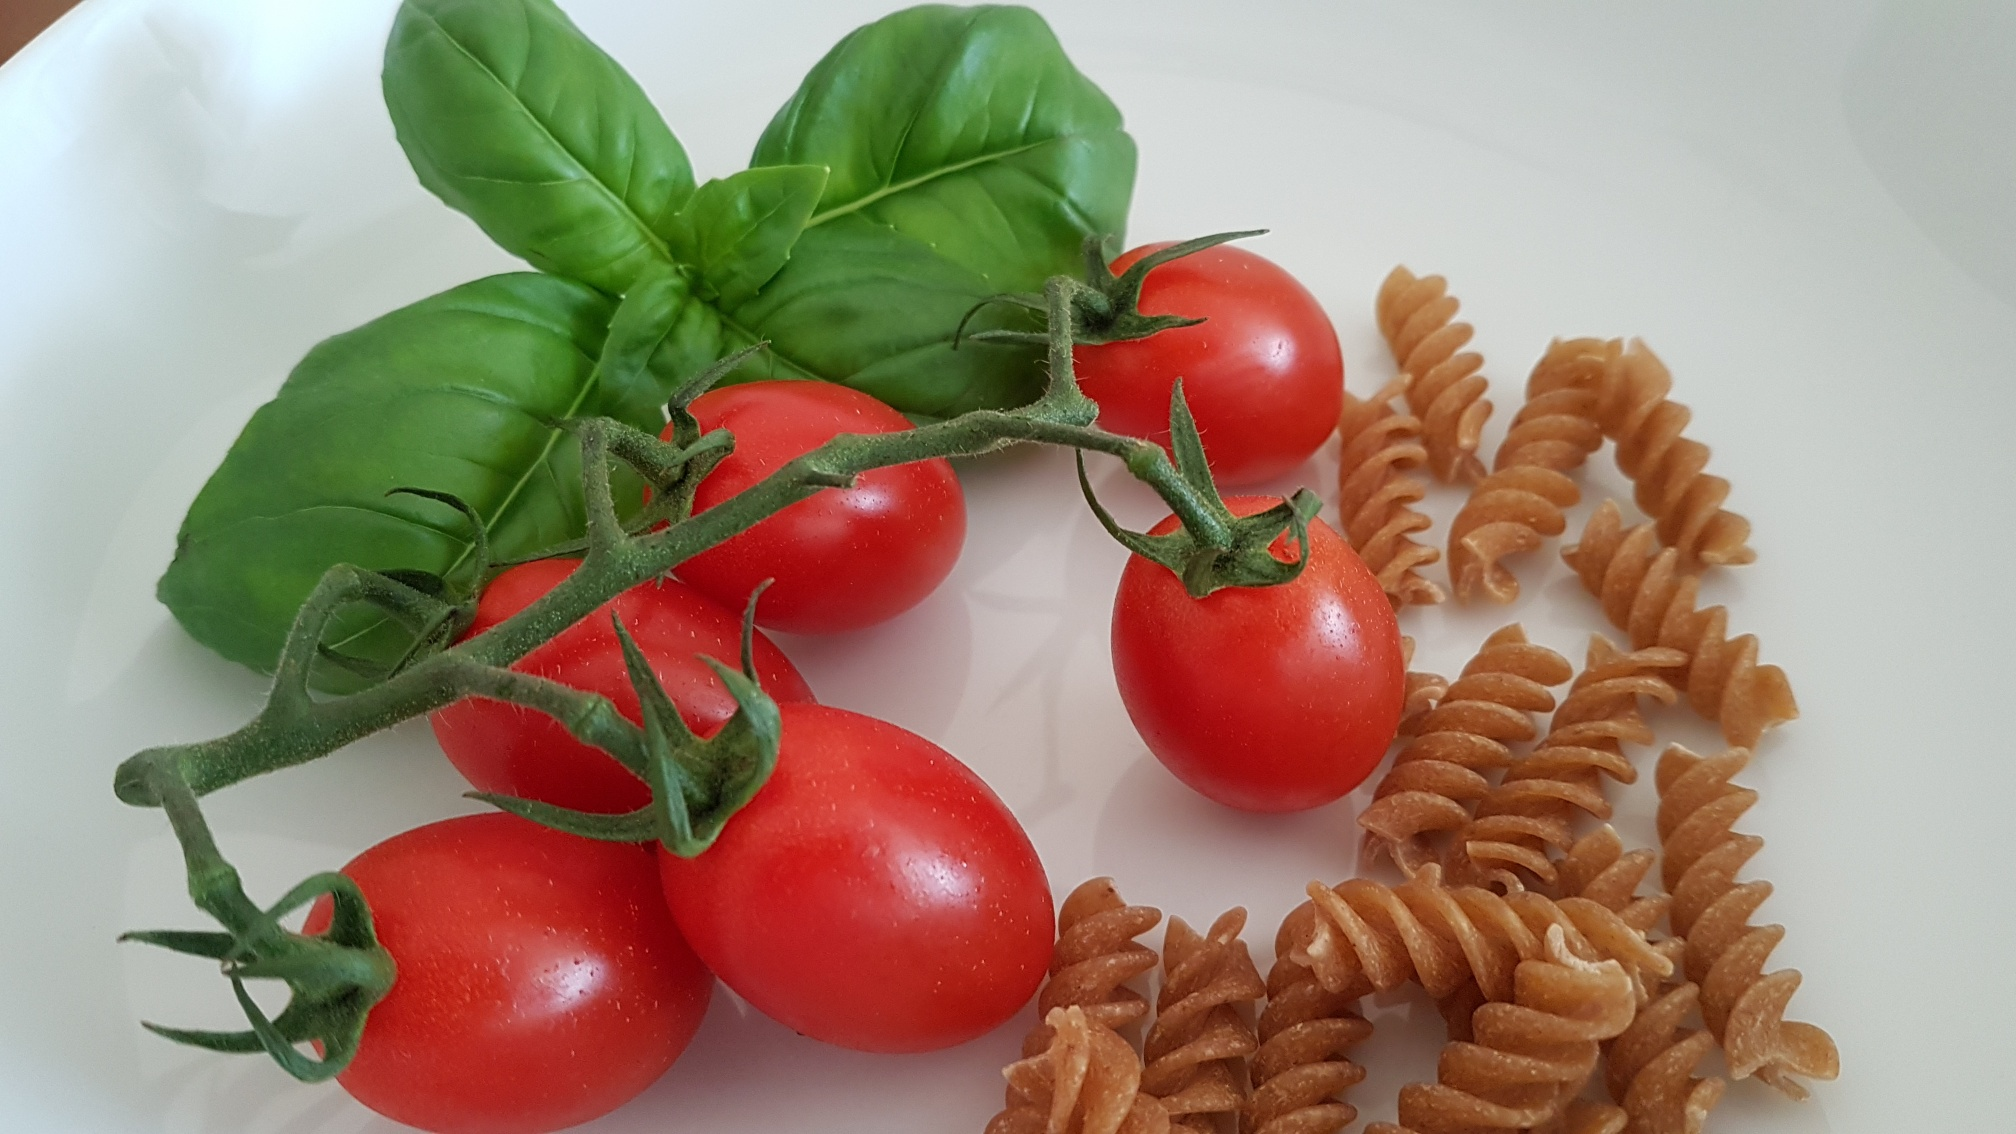 Ingredients for a cold pasta dish of tomatoes, large leaf basil and pasta shells